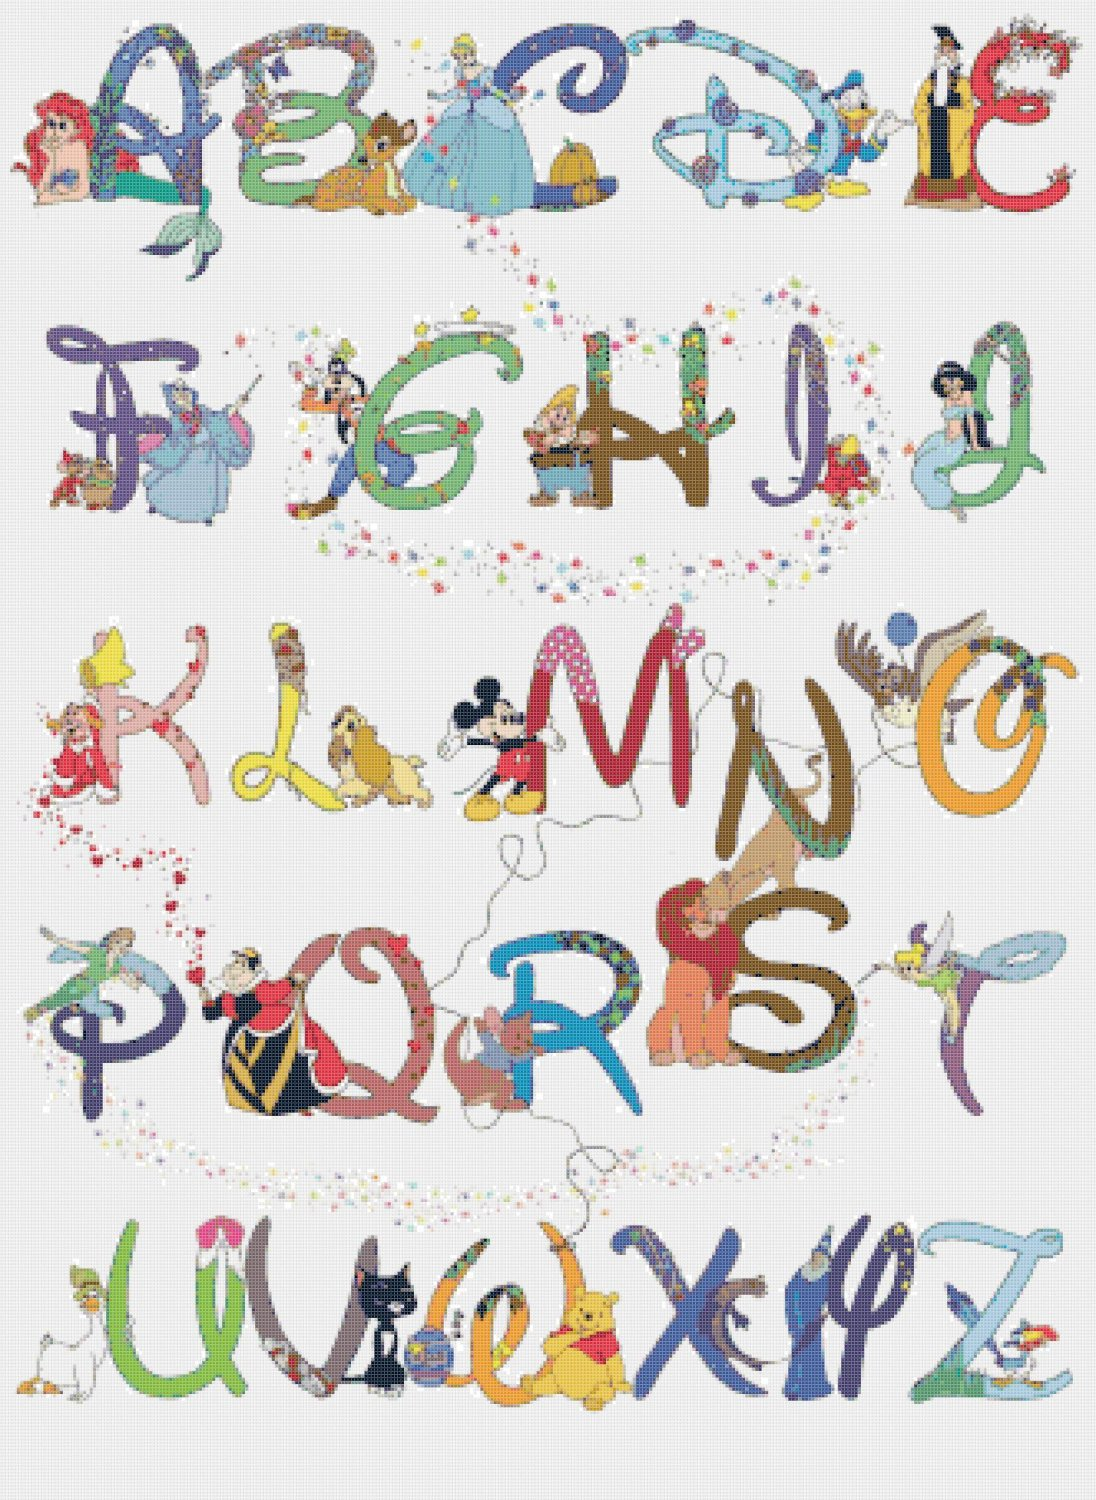 "Alphabet Disney characters - 23.64"" x 32.36"" - Cross Stitch Pattern Pdf E531"